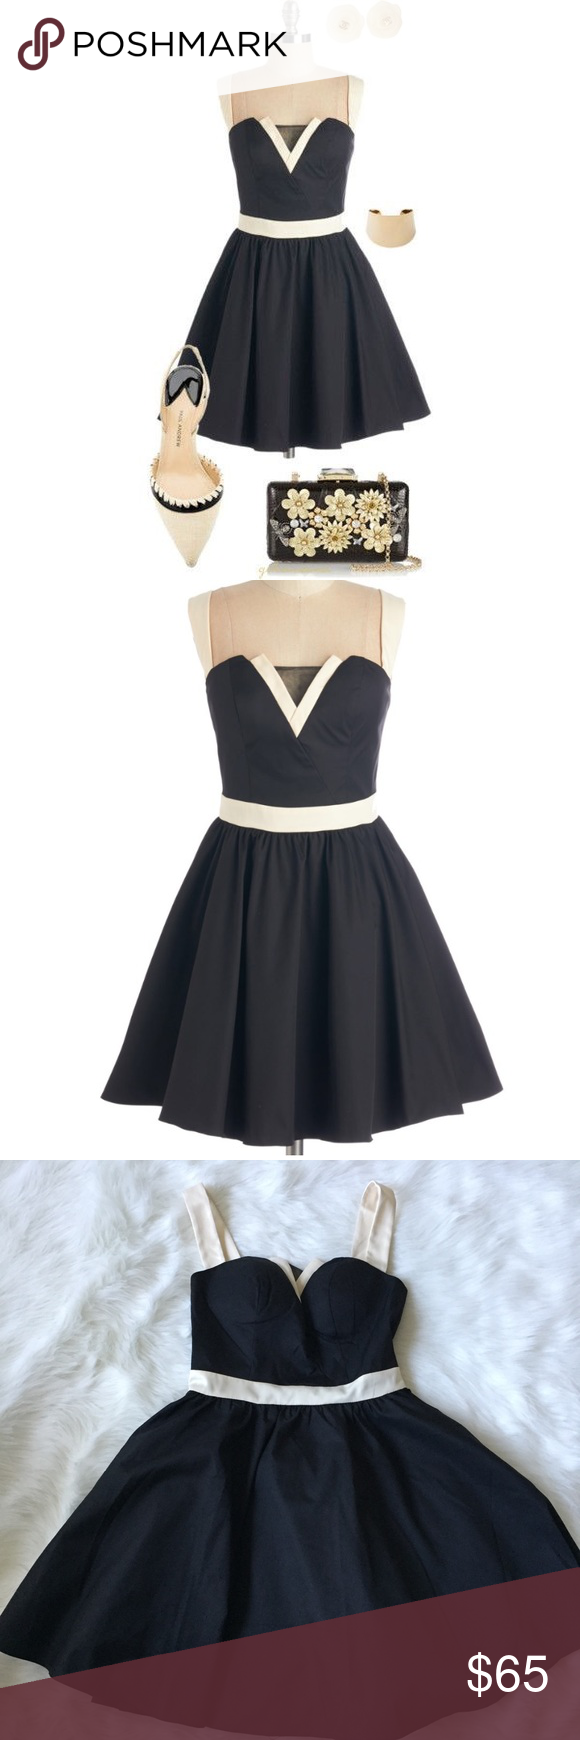 Chi Chi London Trim And Prosper Party Dress Chi Chi London Dress Dresses Party Dress